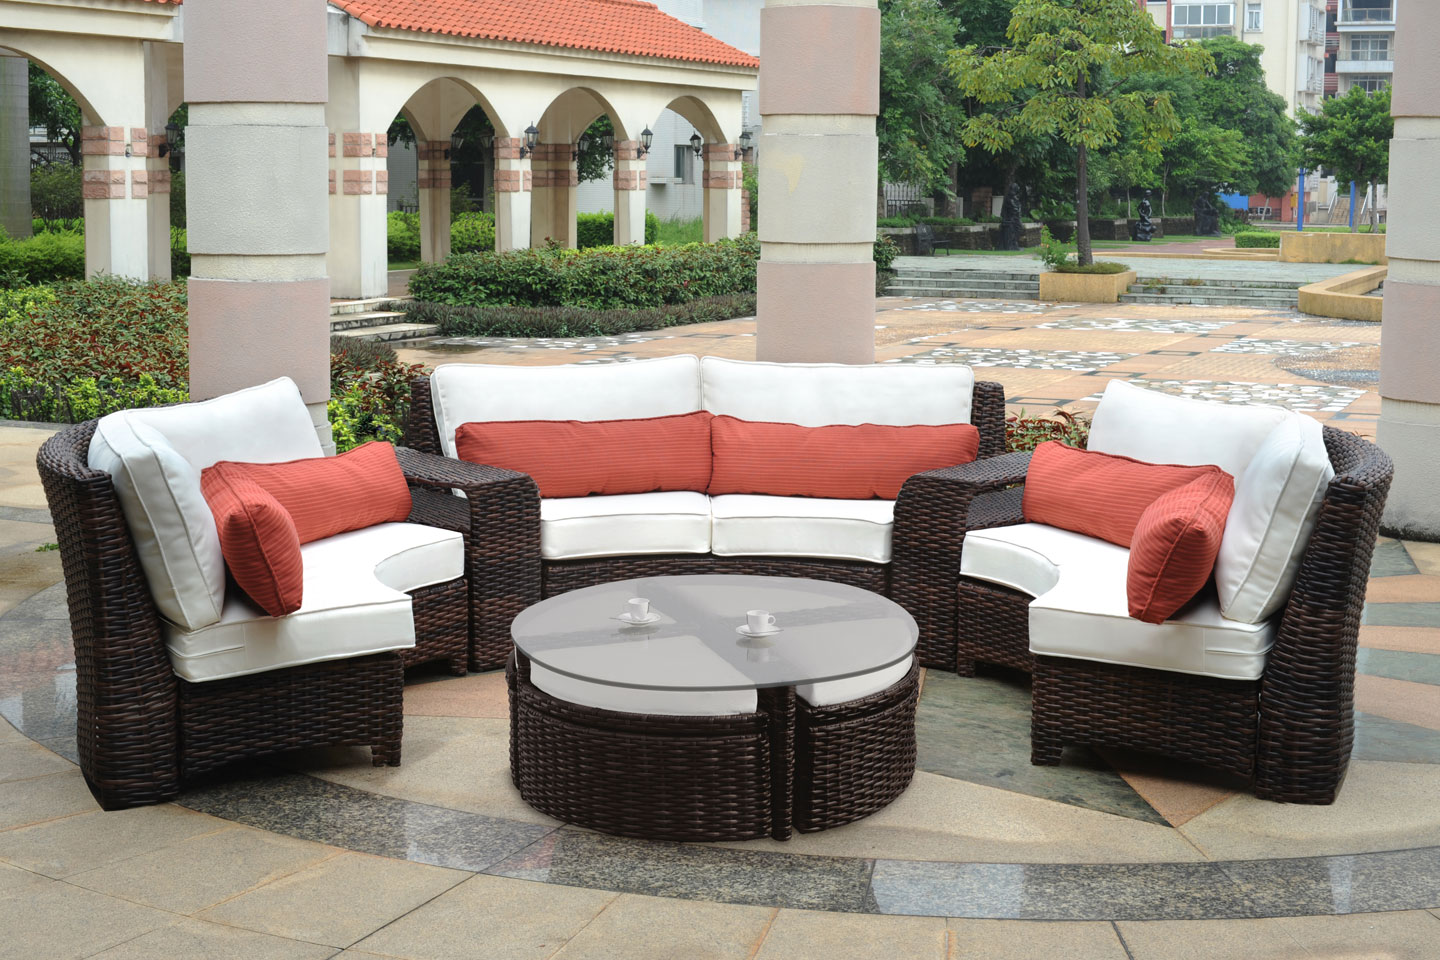 Fiji curved outdoor resin wicker patio sectional for Outdoor patio set